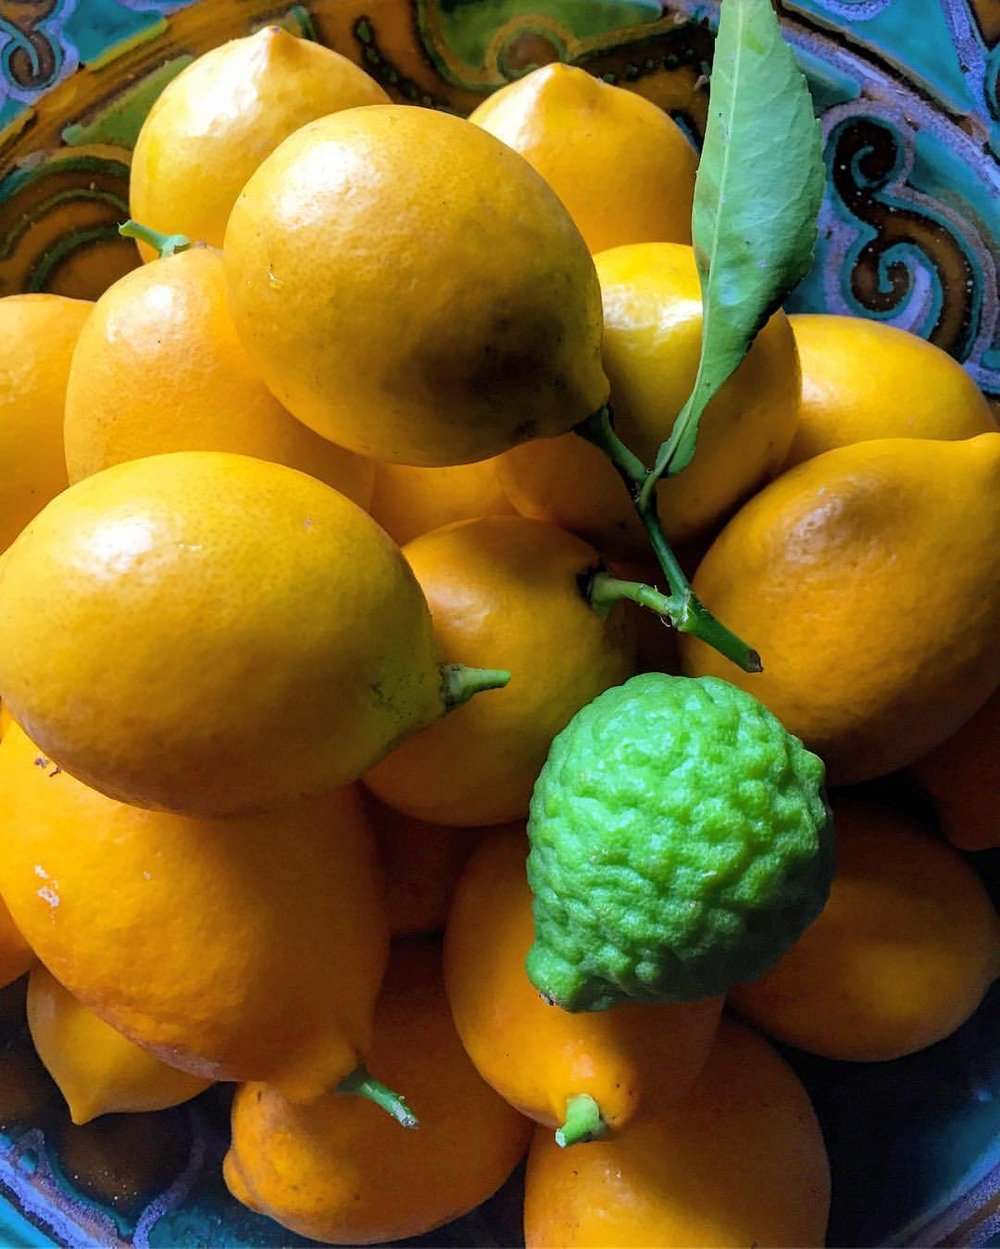 The first winter spent in California, I was completely over the moon about its citrus.  I still am.  #california #garden #citrus  (at At Home in Napa)